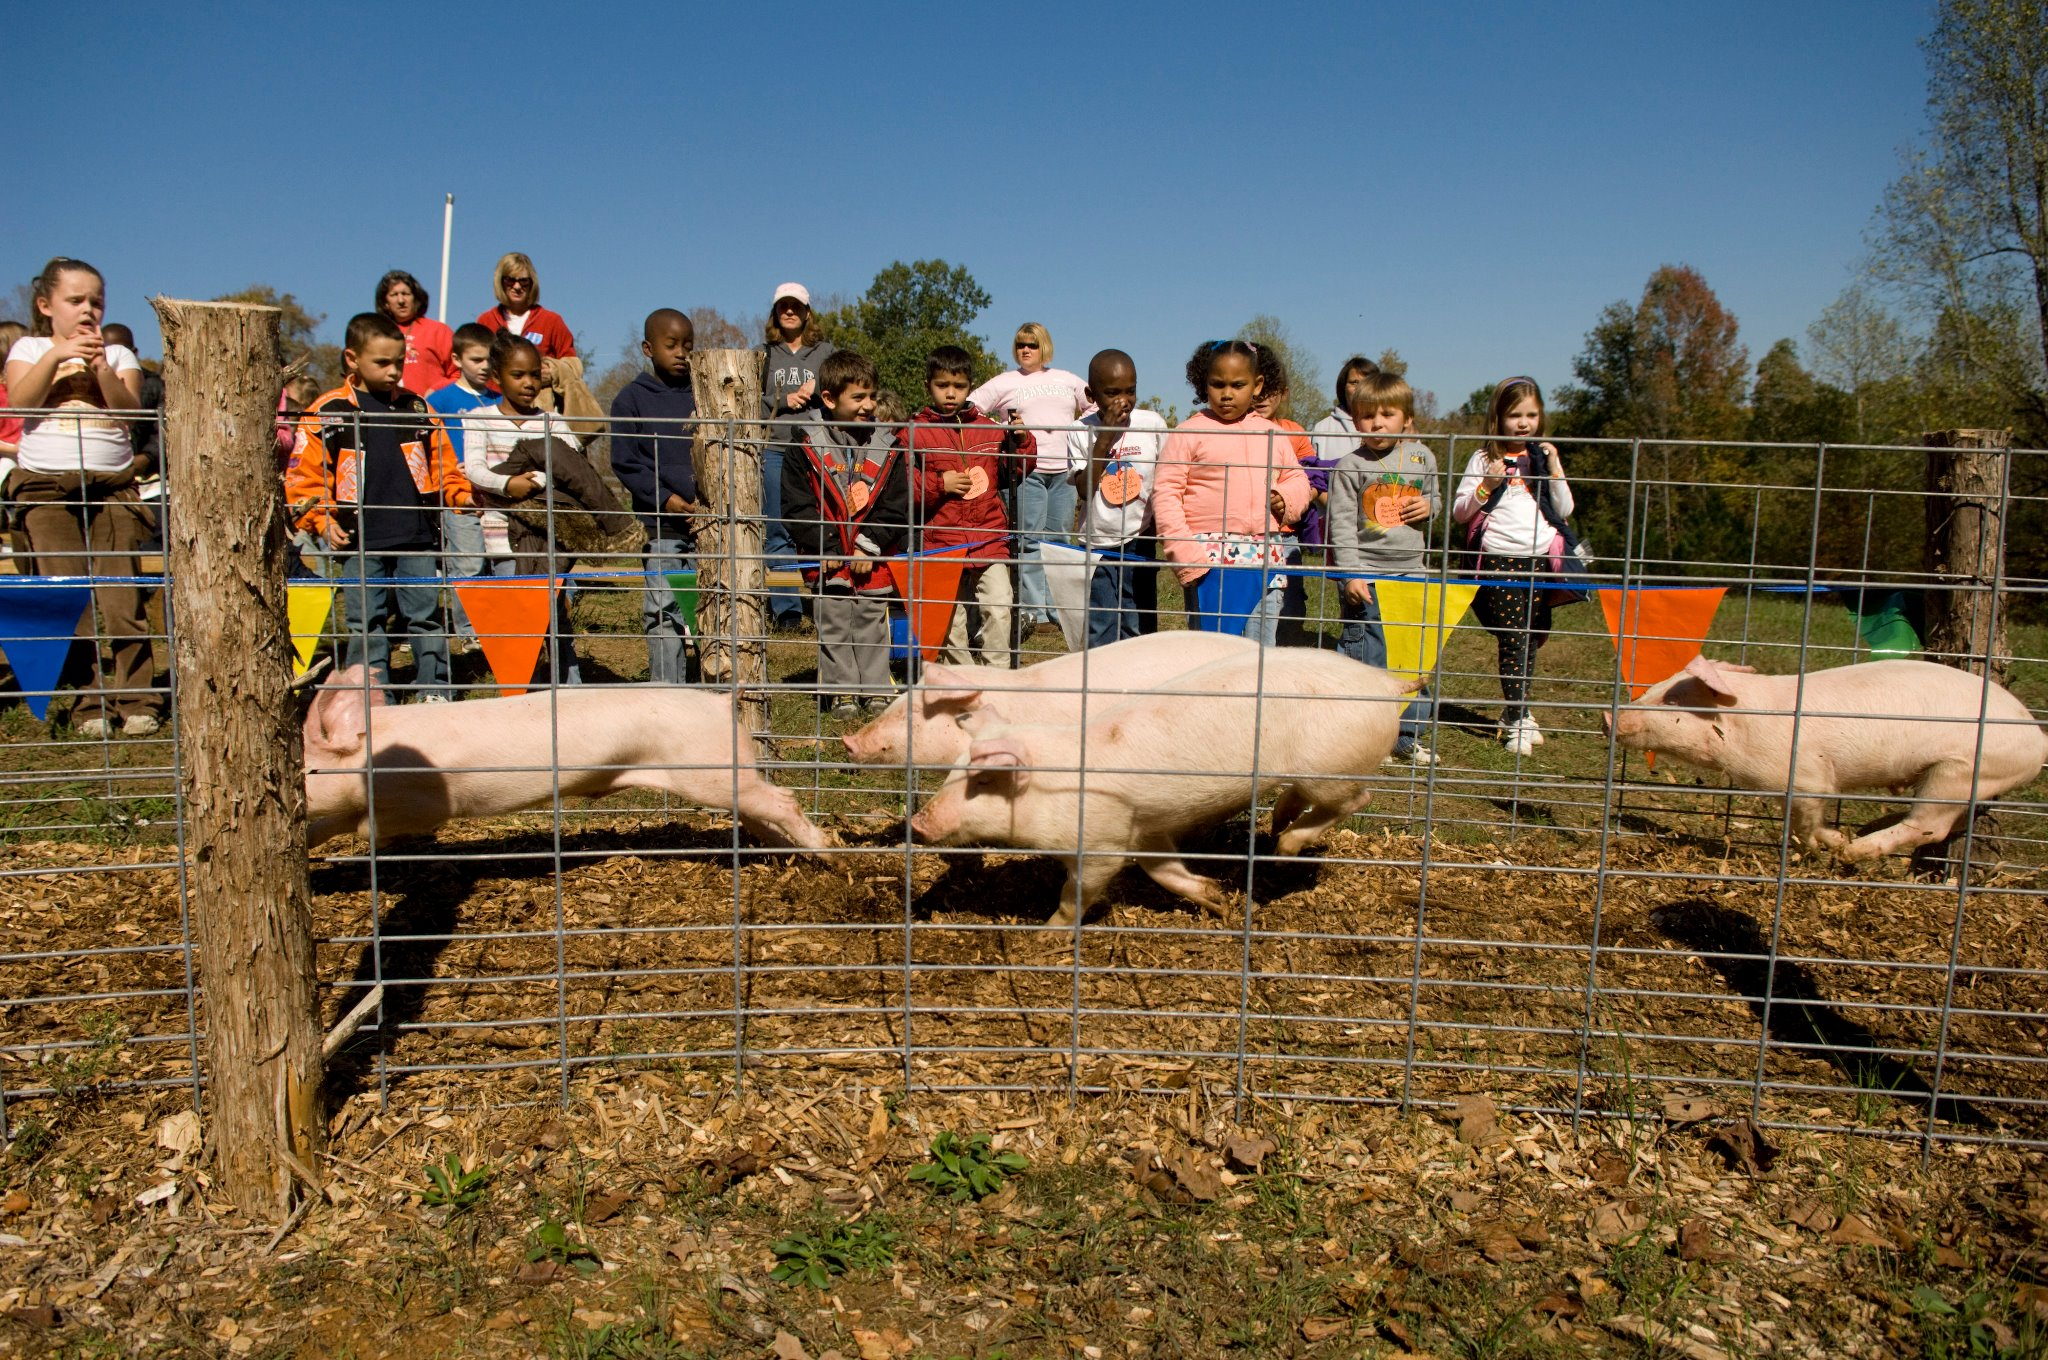 HILLBILLY PIG RACES